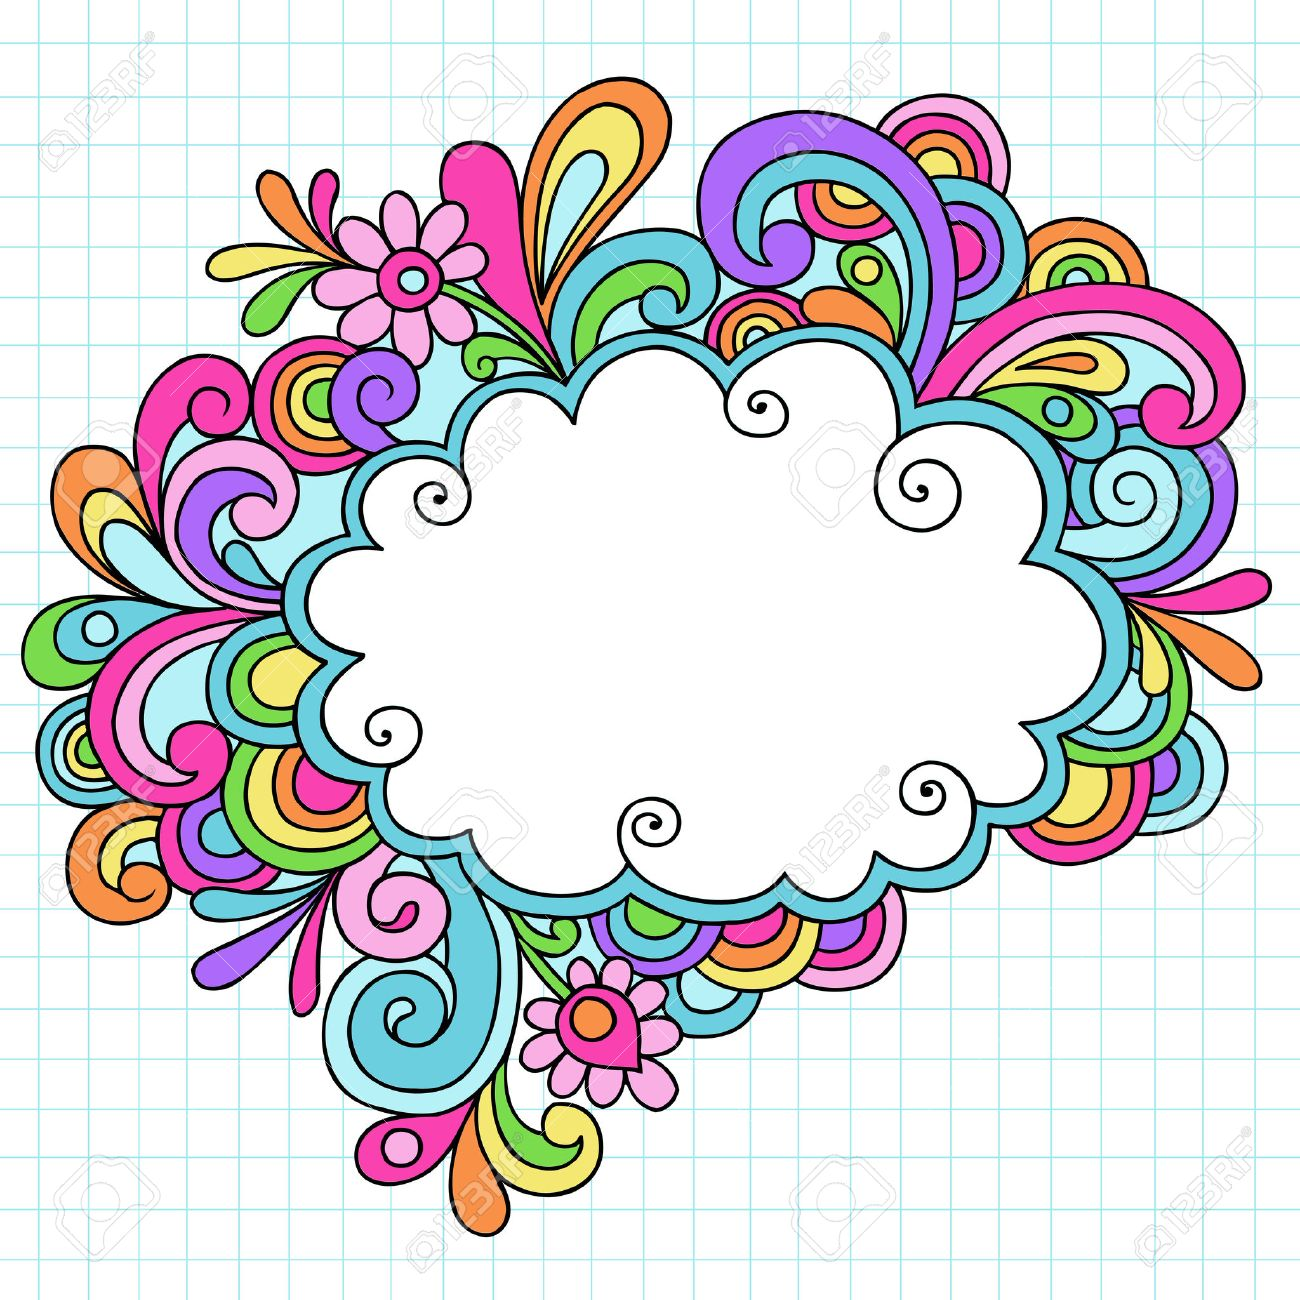 hand drawn psychedelic groovy notebook doodle cloud speech bubble rh 123rf com Free Mountain Vector Free Vector Feather